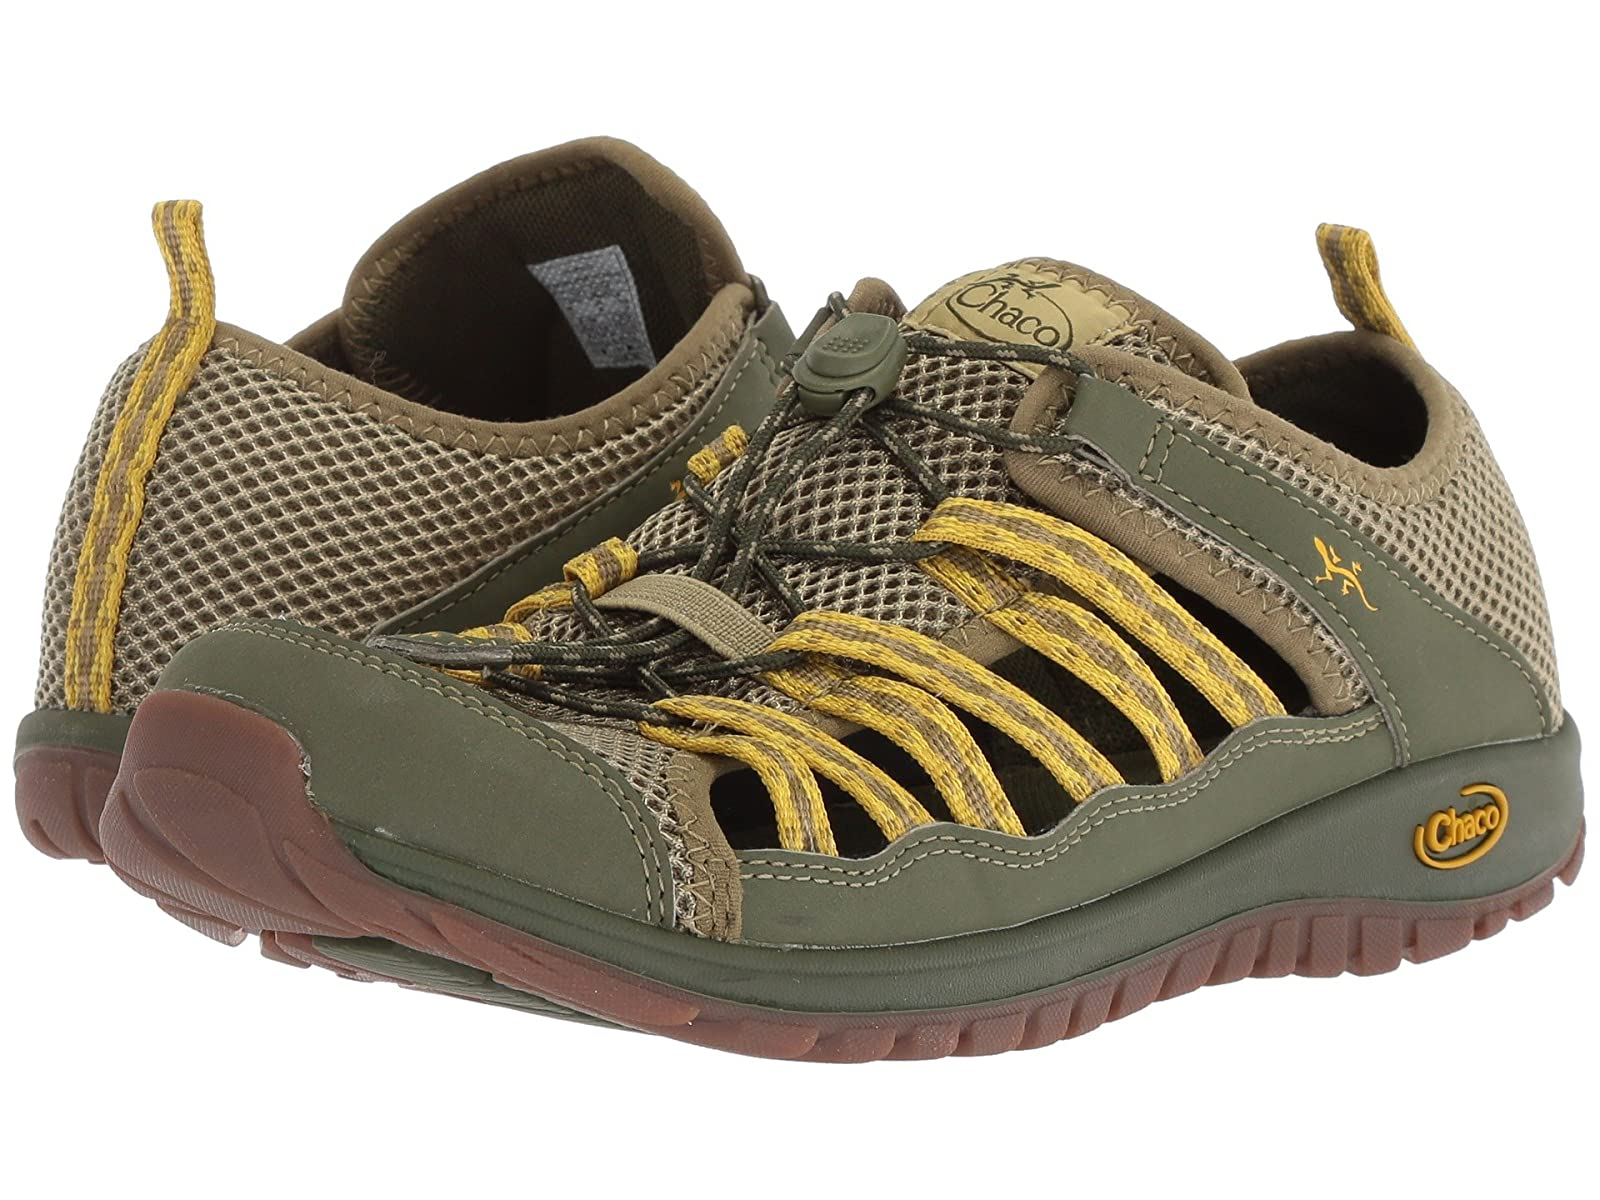 Chaco Kids Outcross 2 (Toddler/Little Kid/Big Kid)Atmospheric grades have affordable shoes